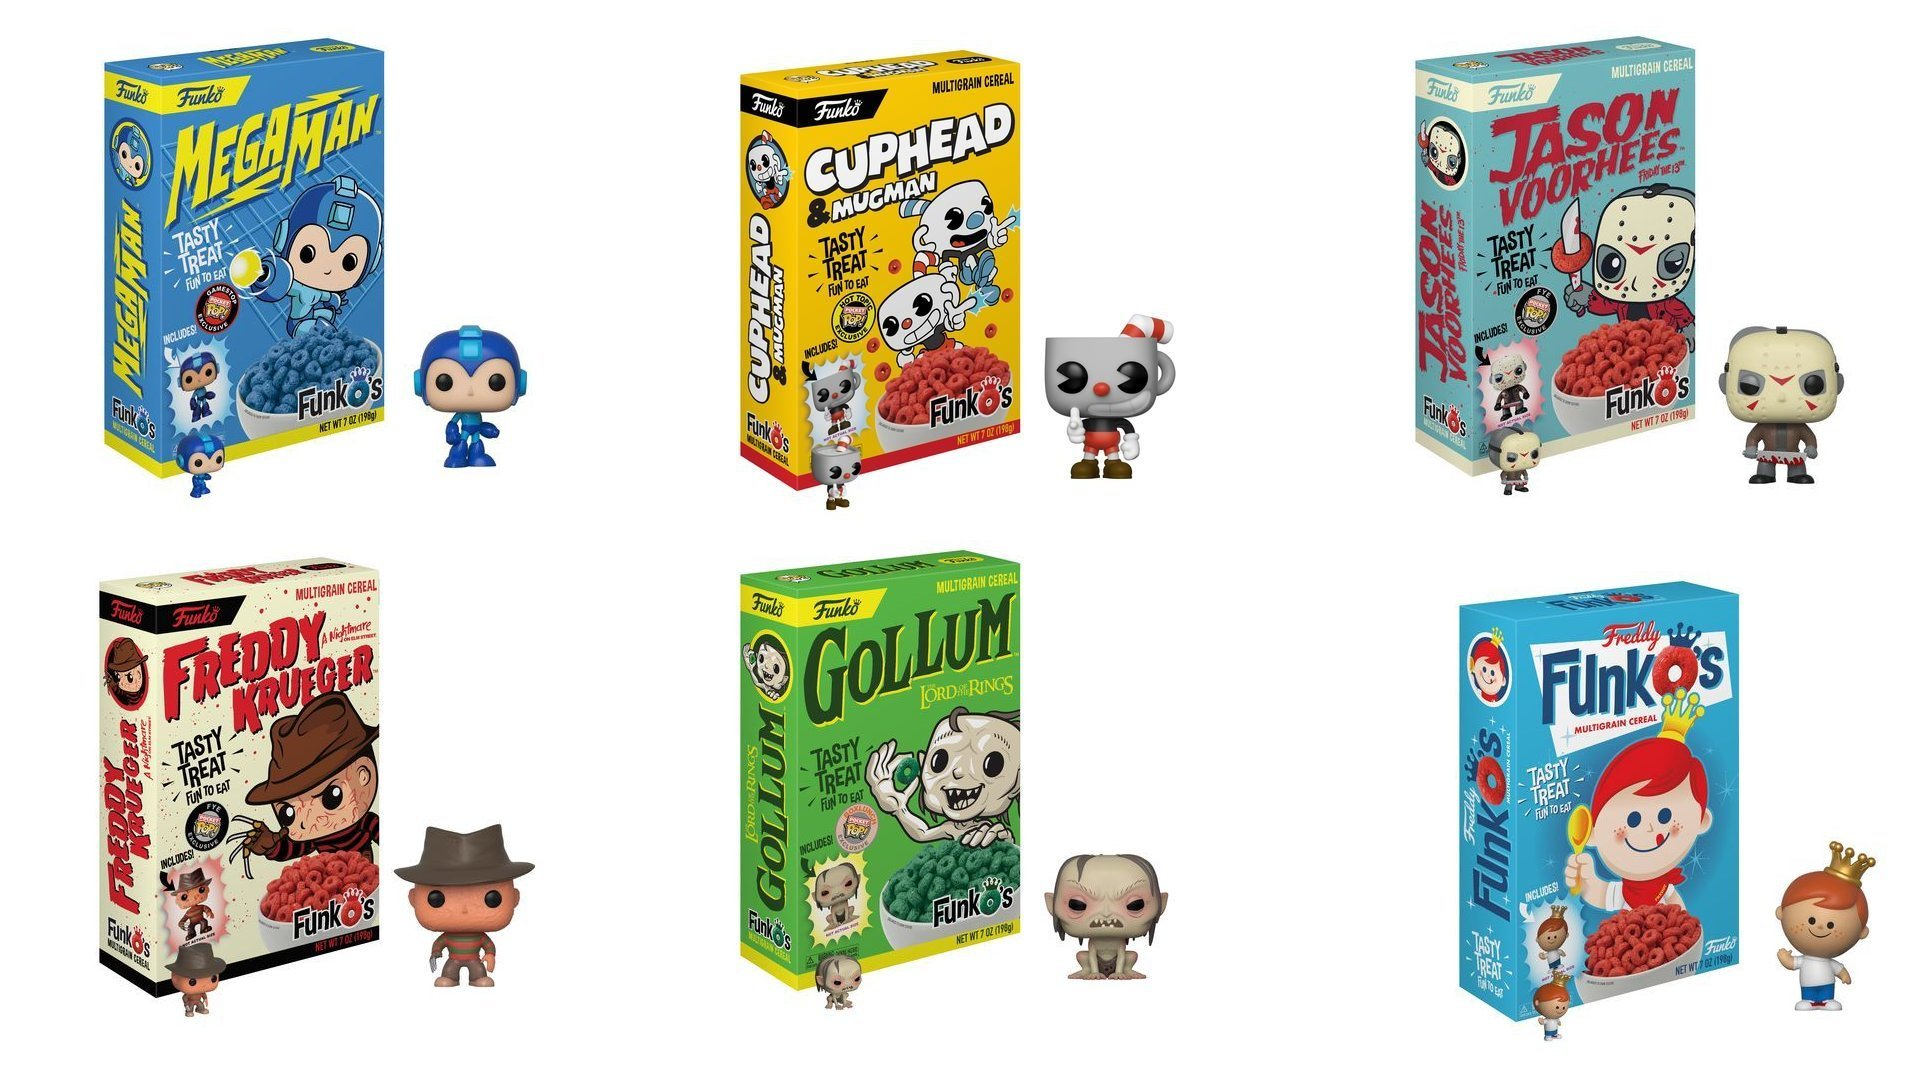 Funko Making Cuphead And Megaman Cereal Allgamers